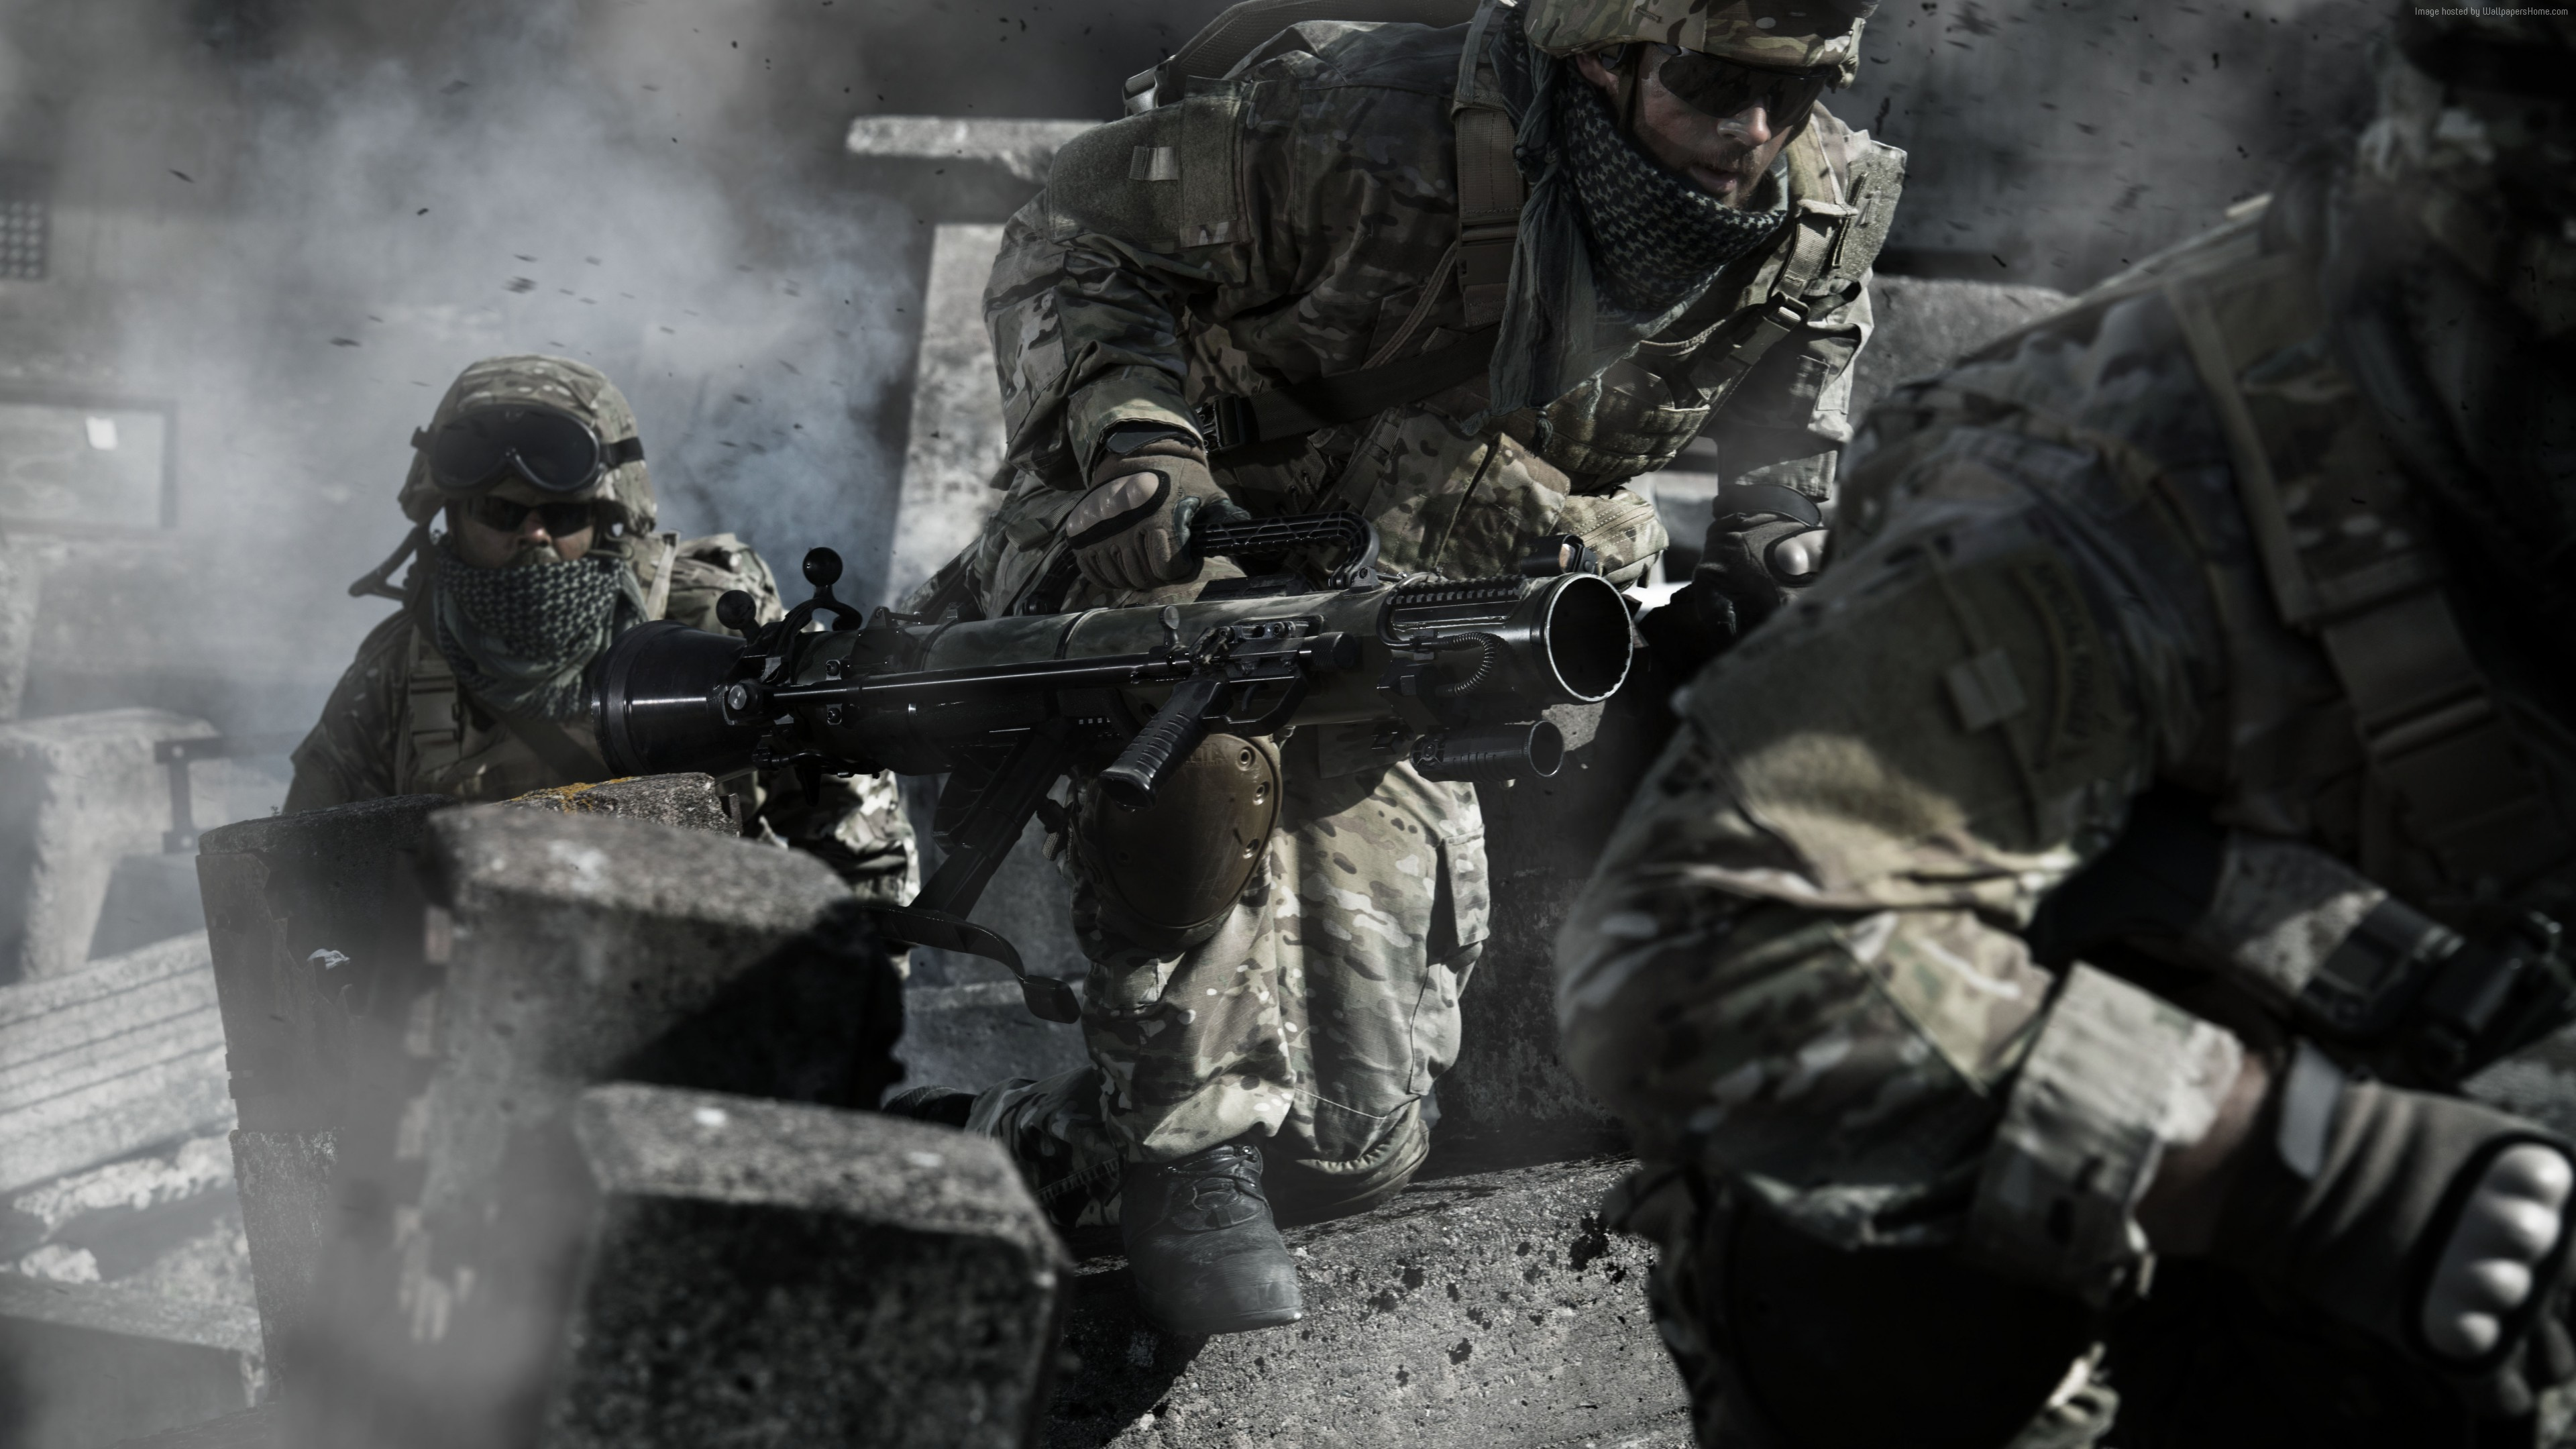 Wallpaper Carl Gustaf M4, recoilless rifle, Swedish Army, Military